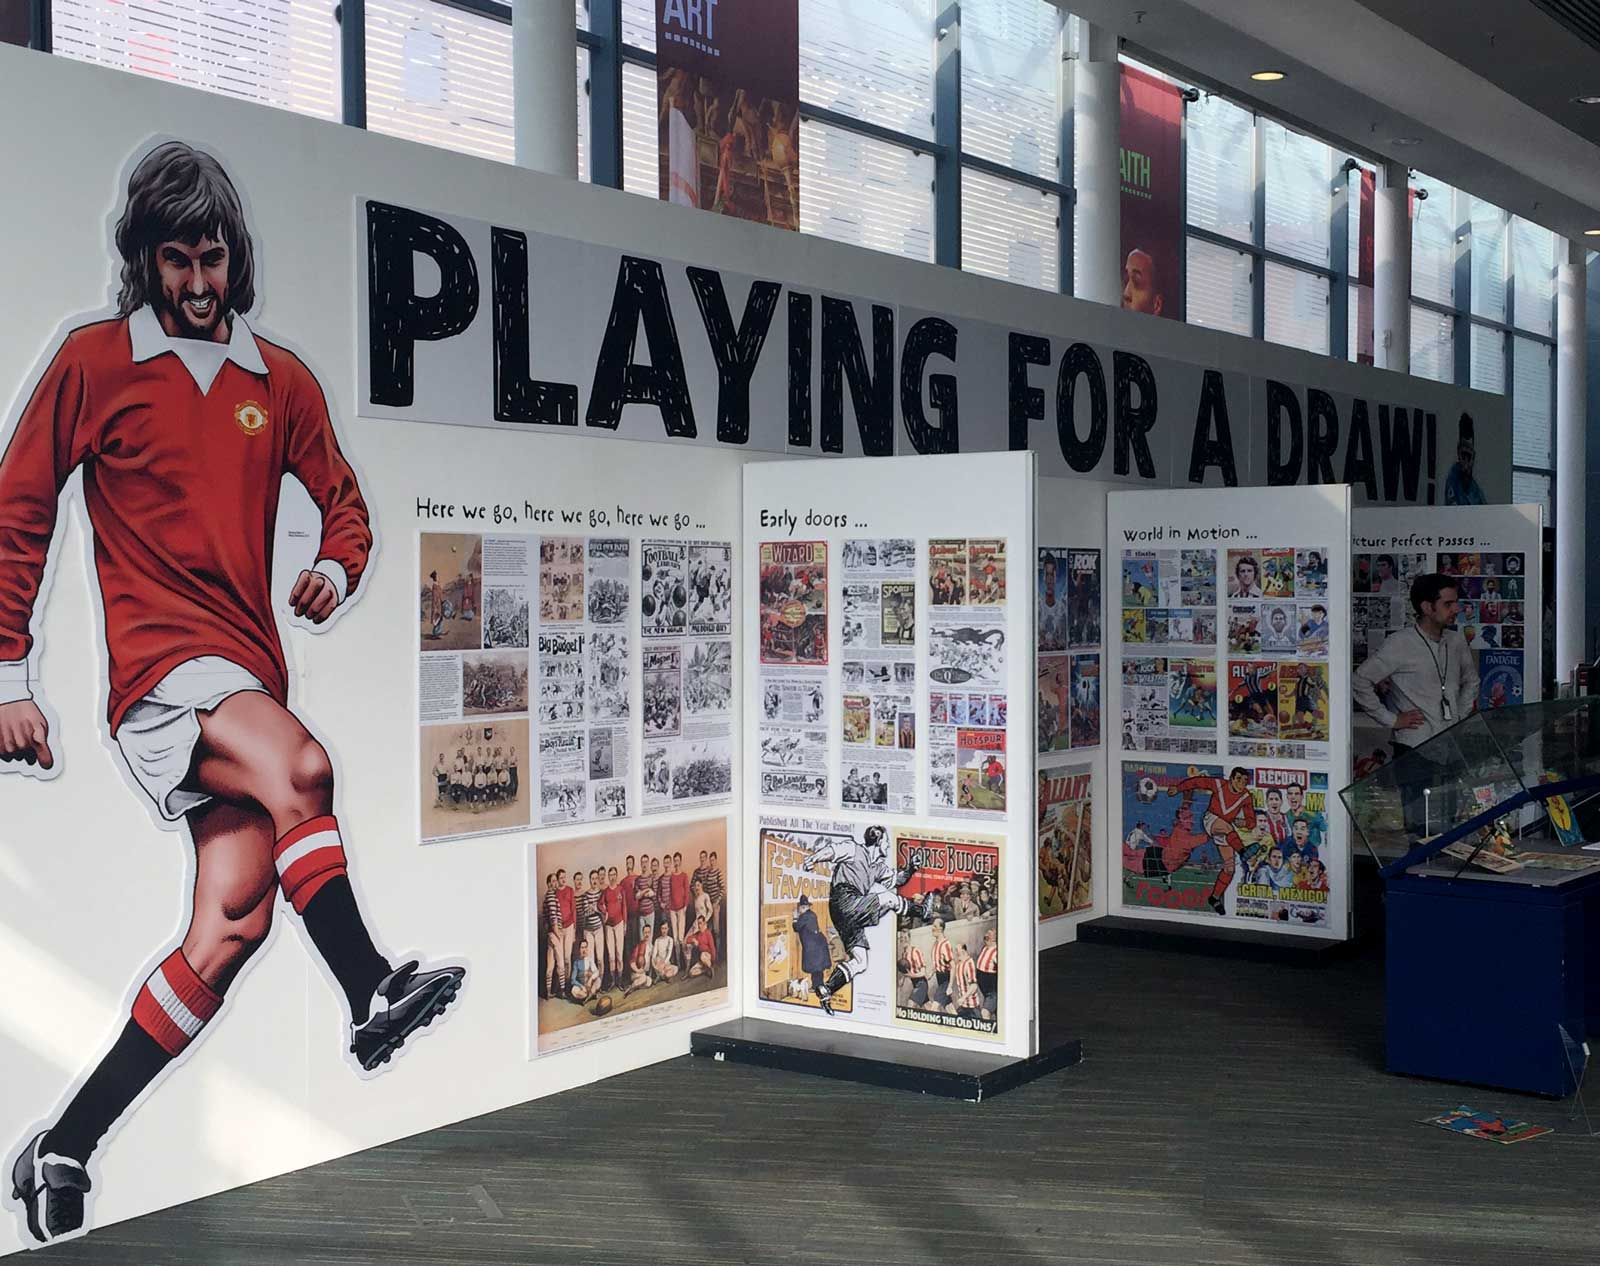 In Pictures: Playing for a Draw Football Comics Exhibition, the National Football Museum